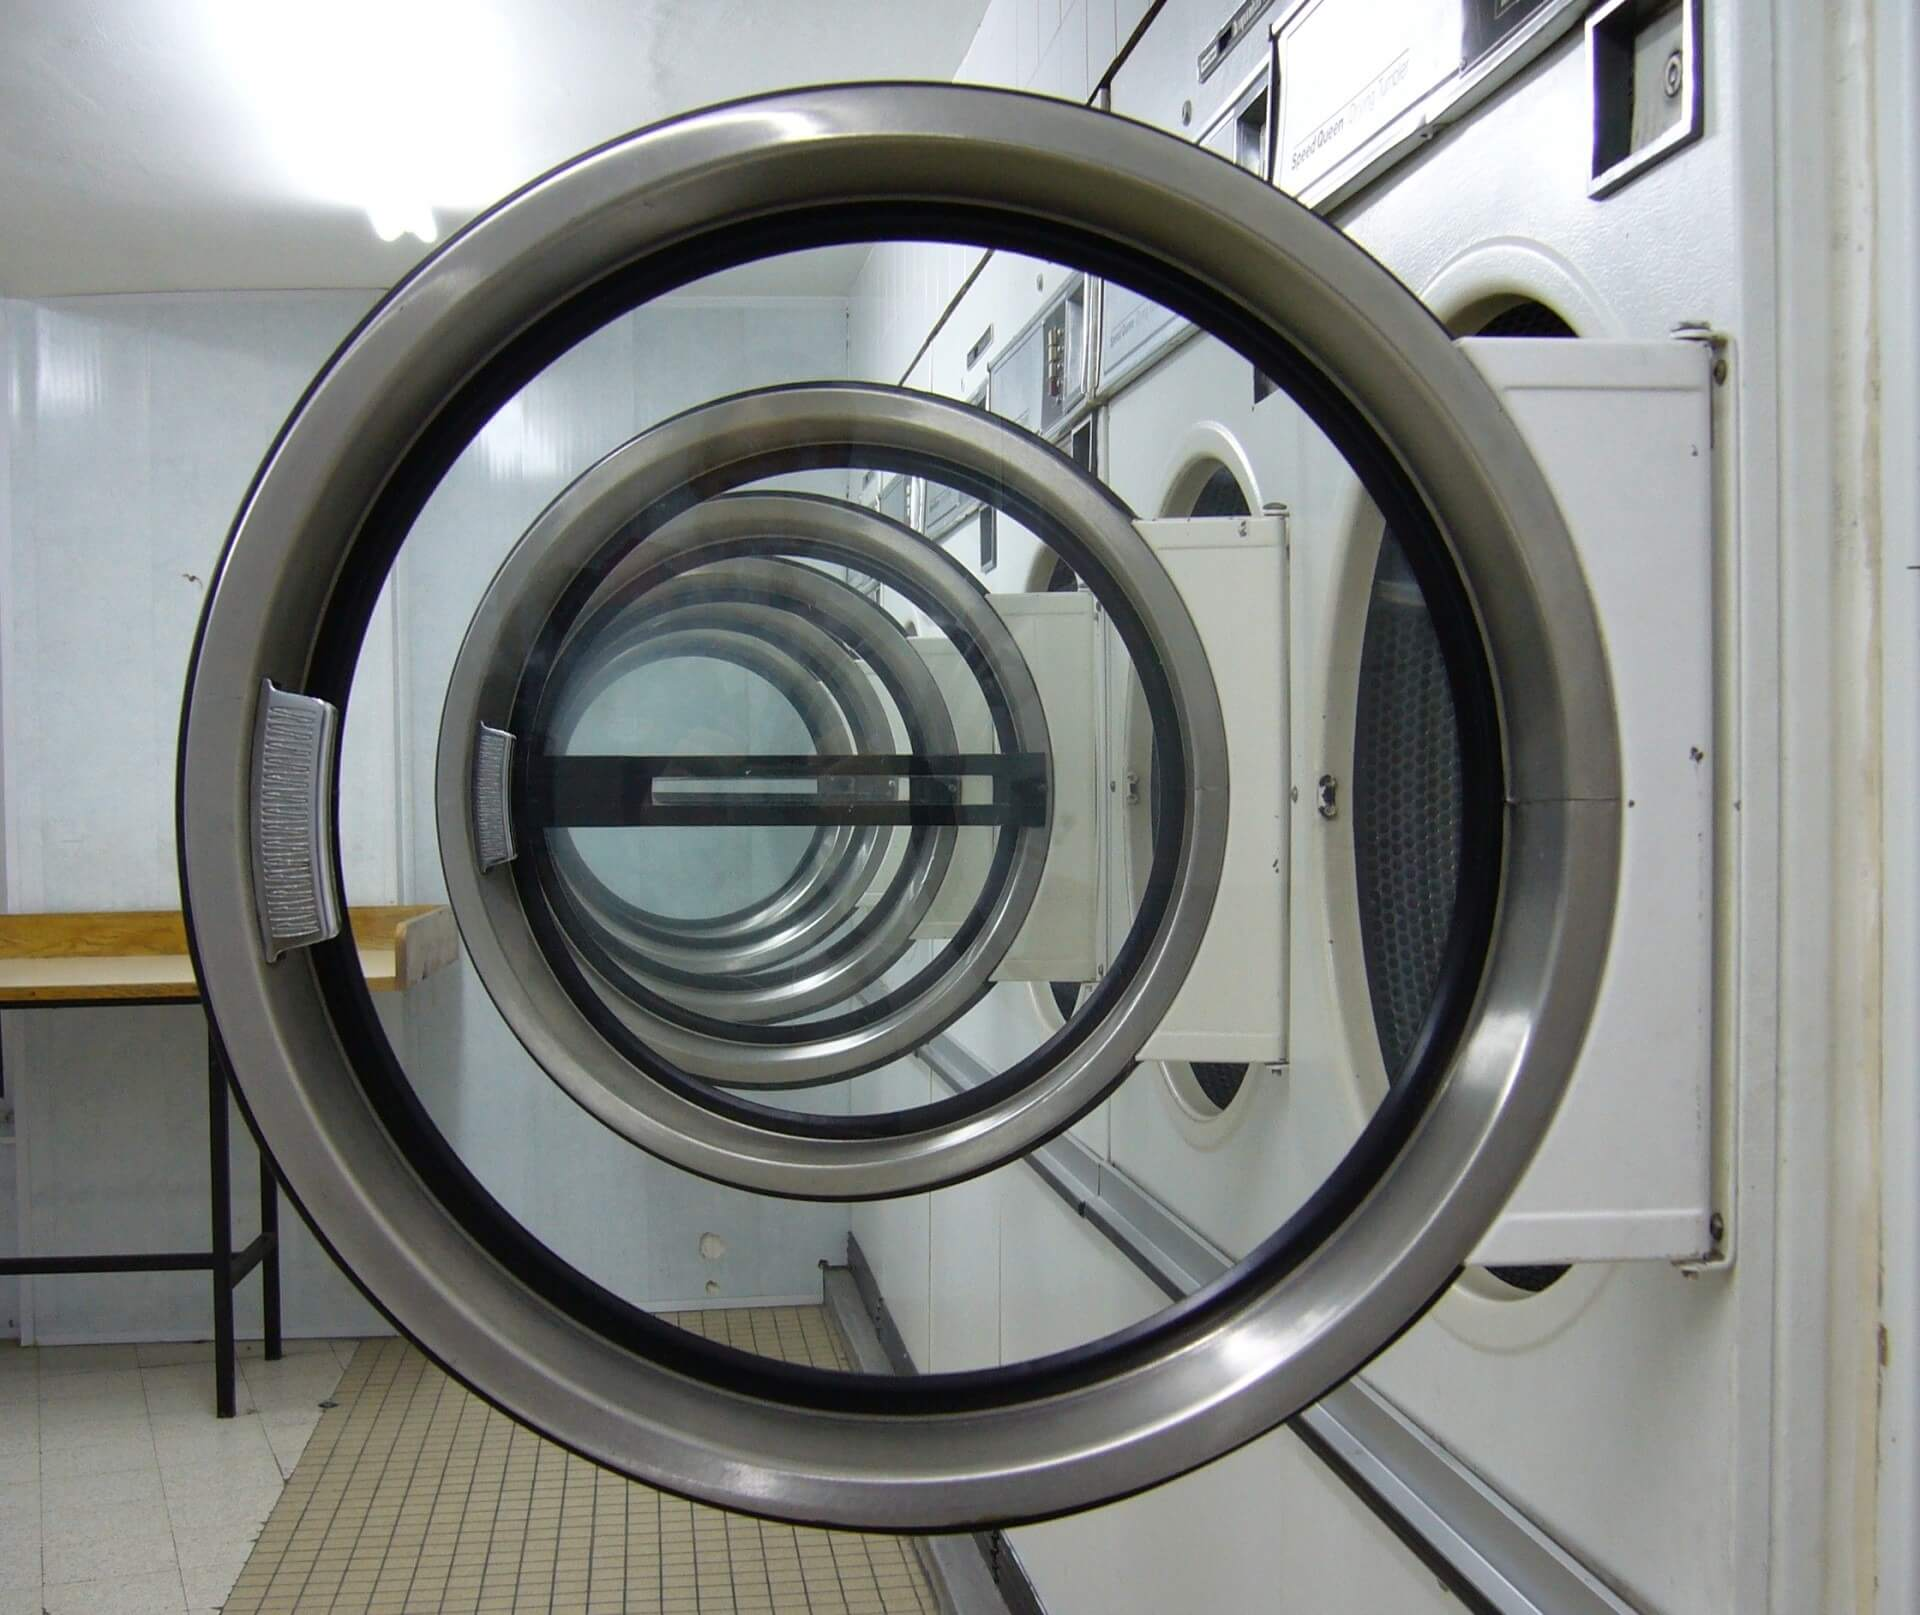 Dryer Repair in Queens